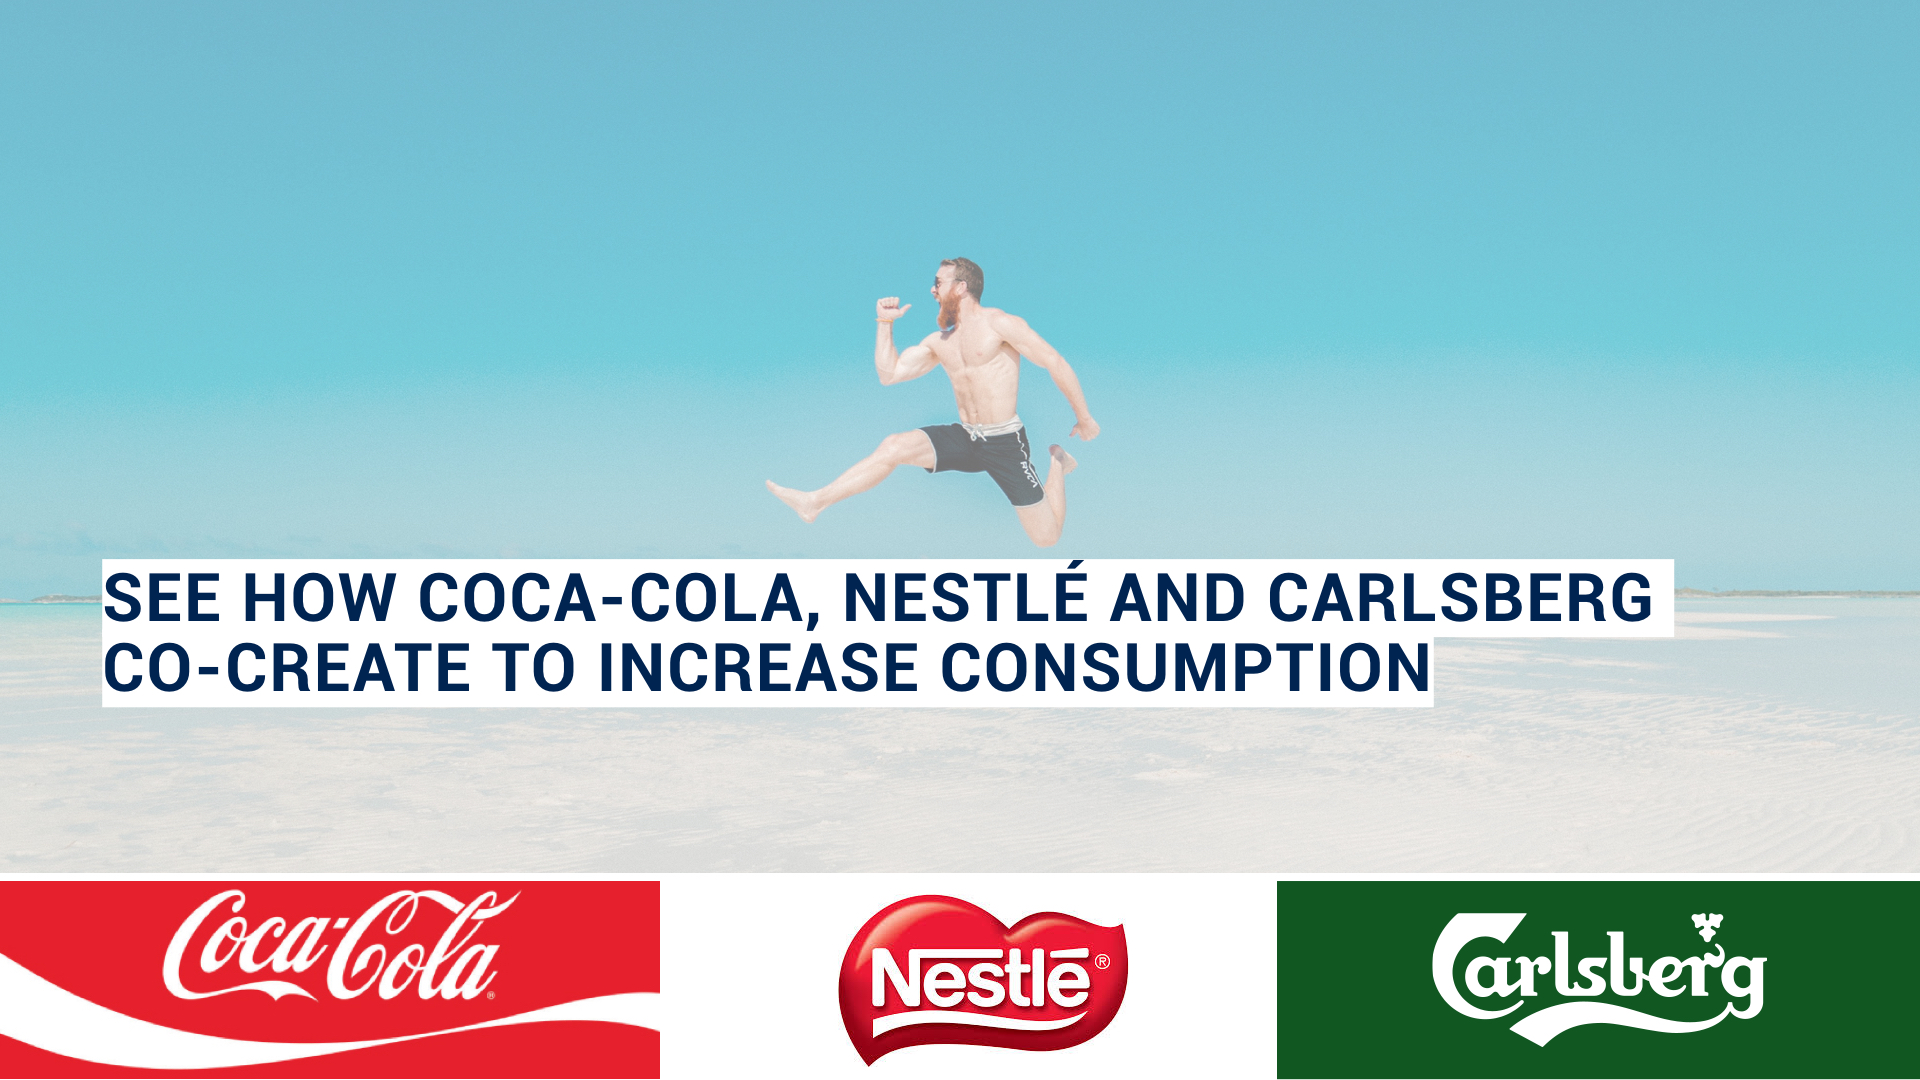 See How Coca-Cola, Nestlé and Carlsberg Co-Create to